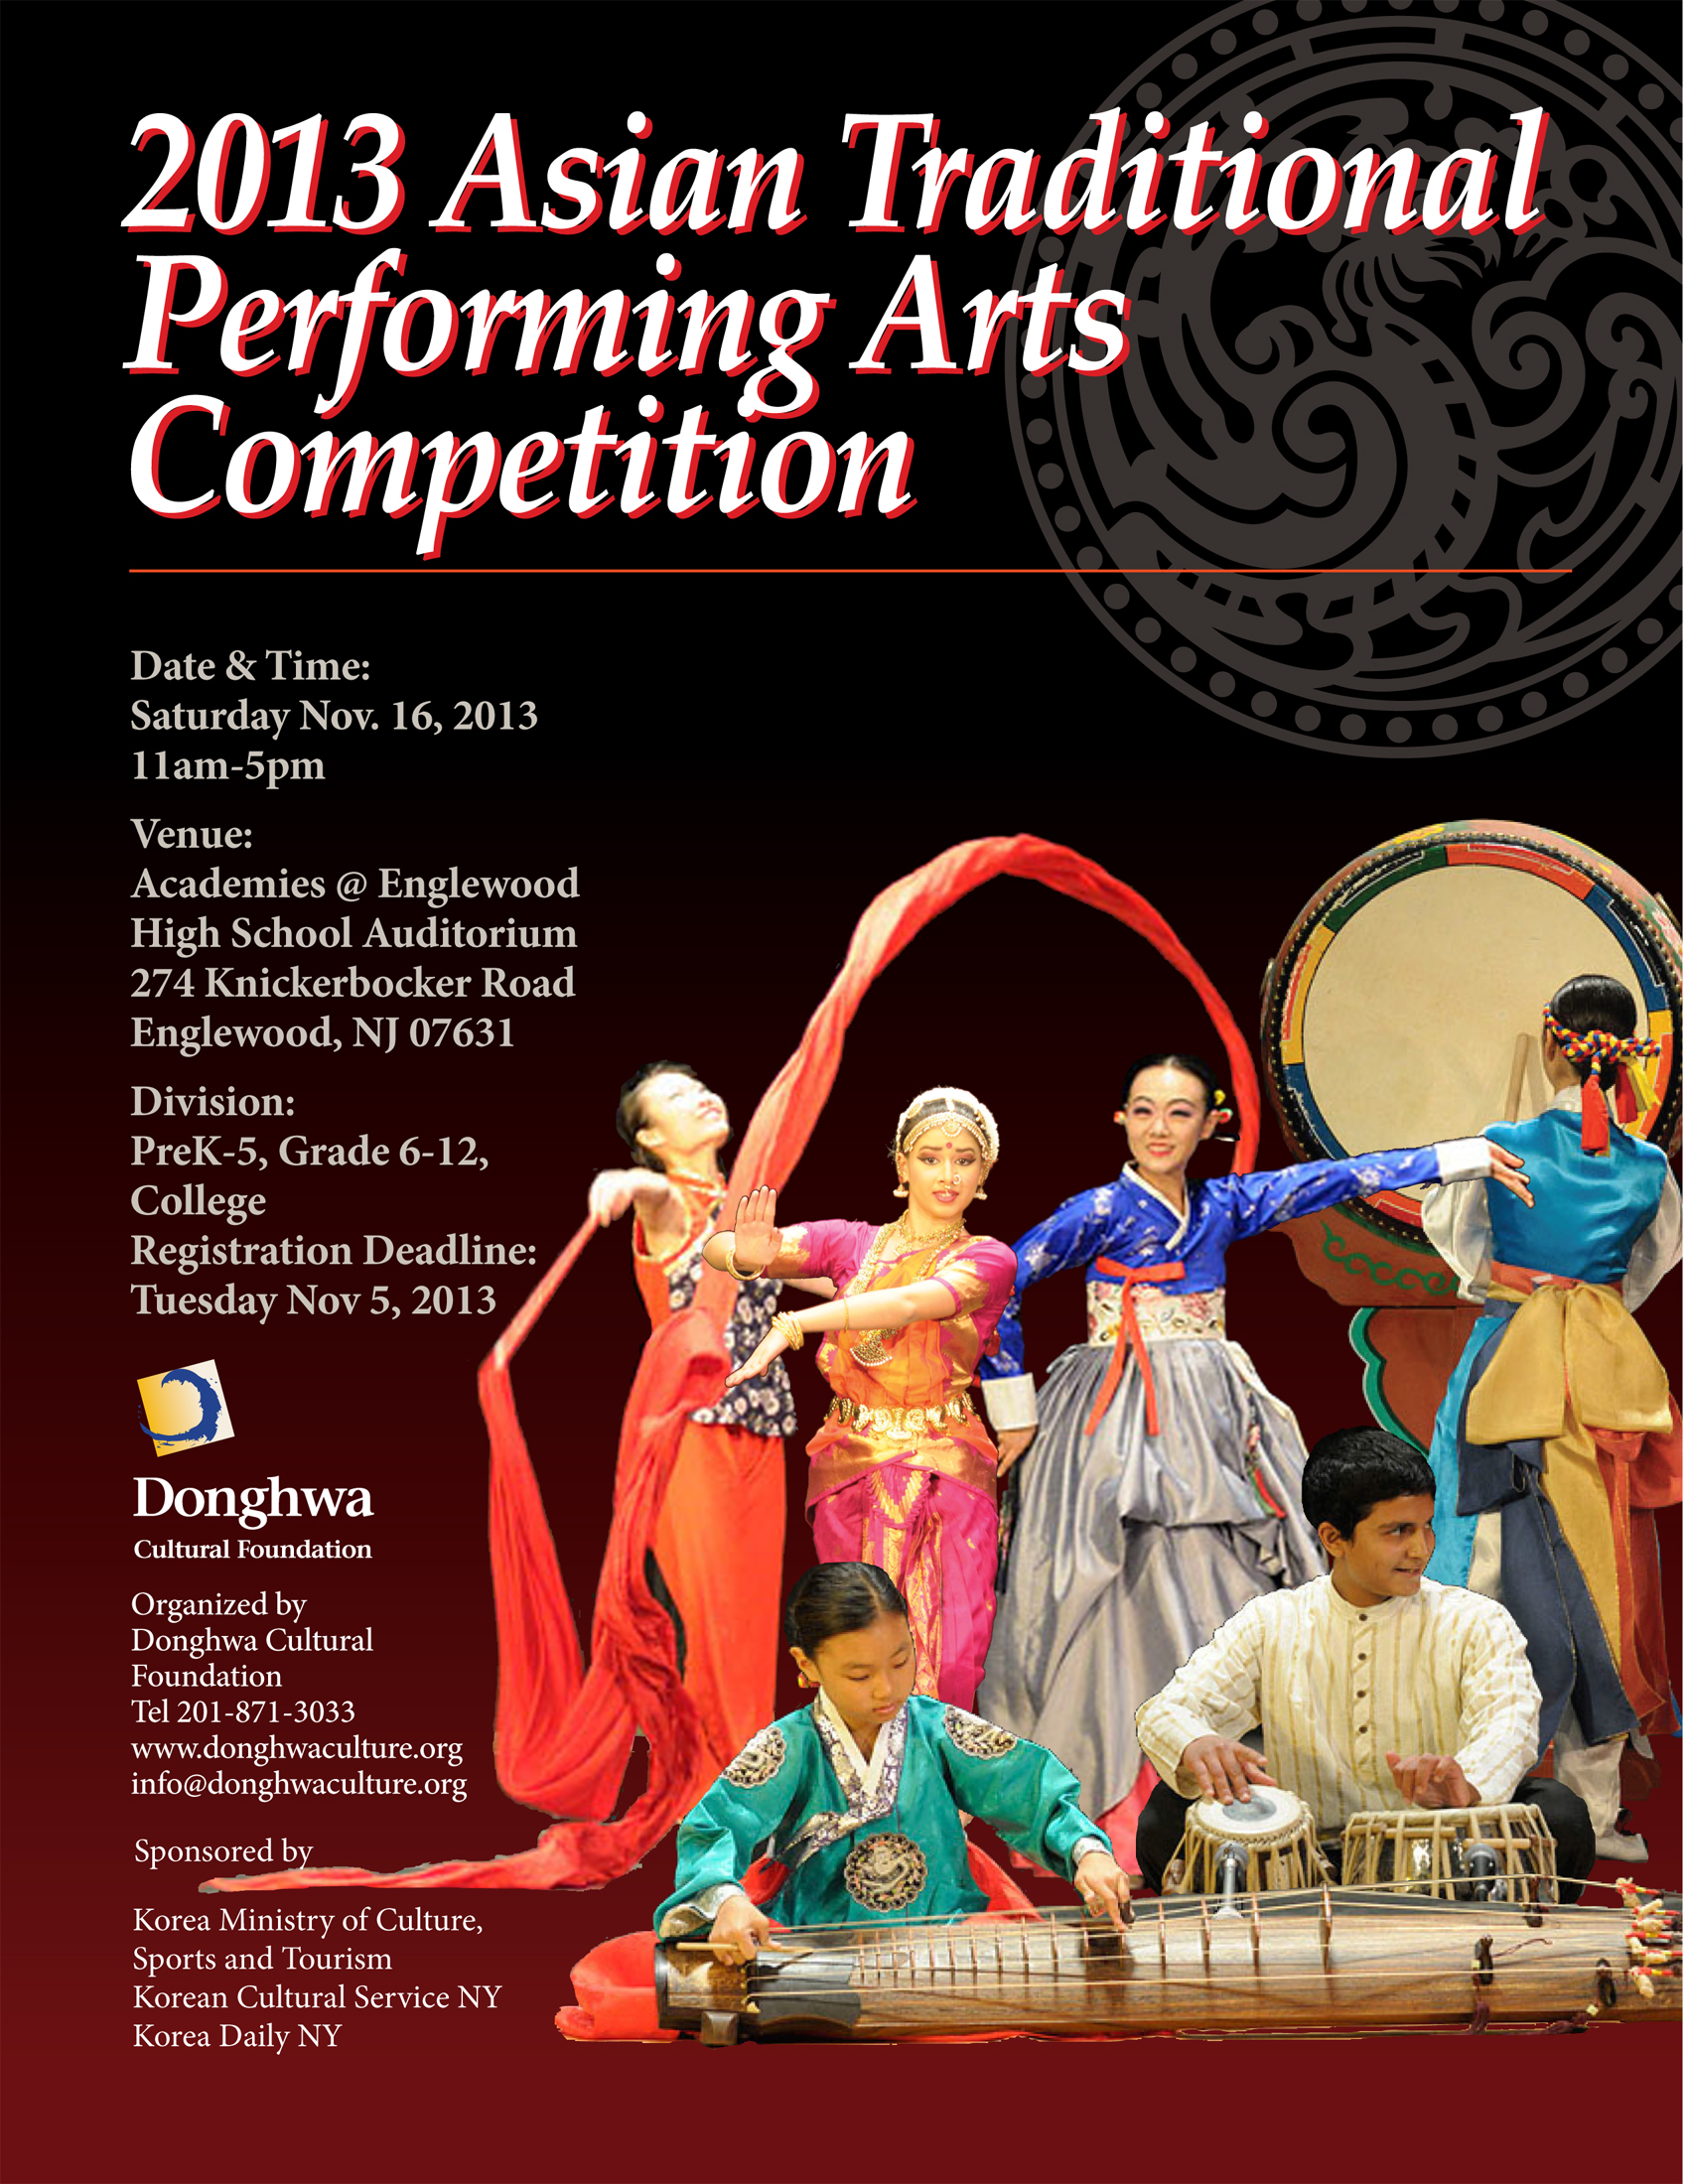 The 2013 Asian Traditional Performing Arts Competition Is An Annual Exhibition Of Dance And Music Not Only Does Event Serve As